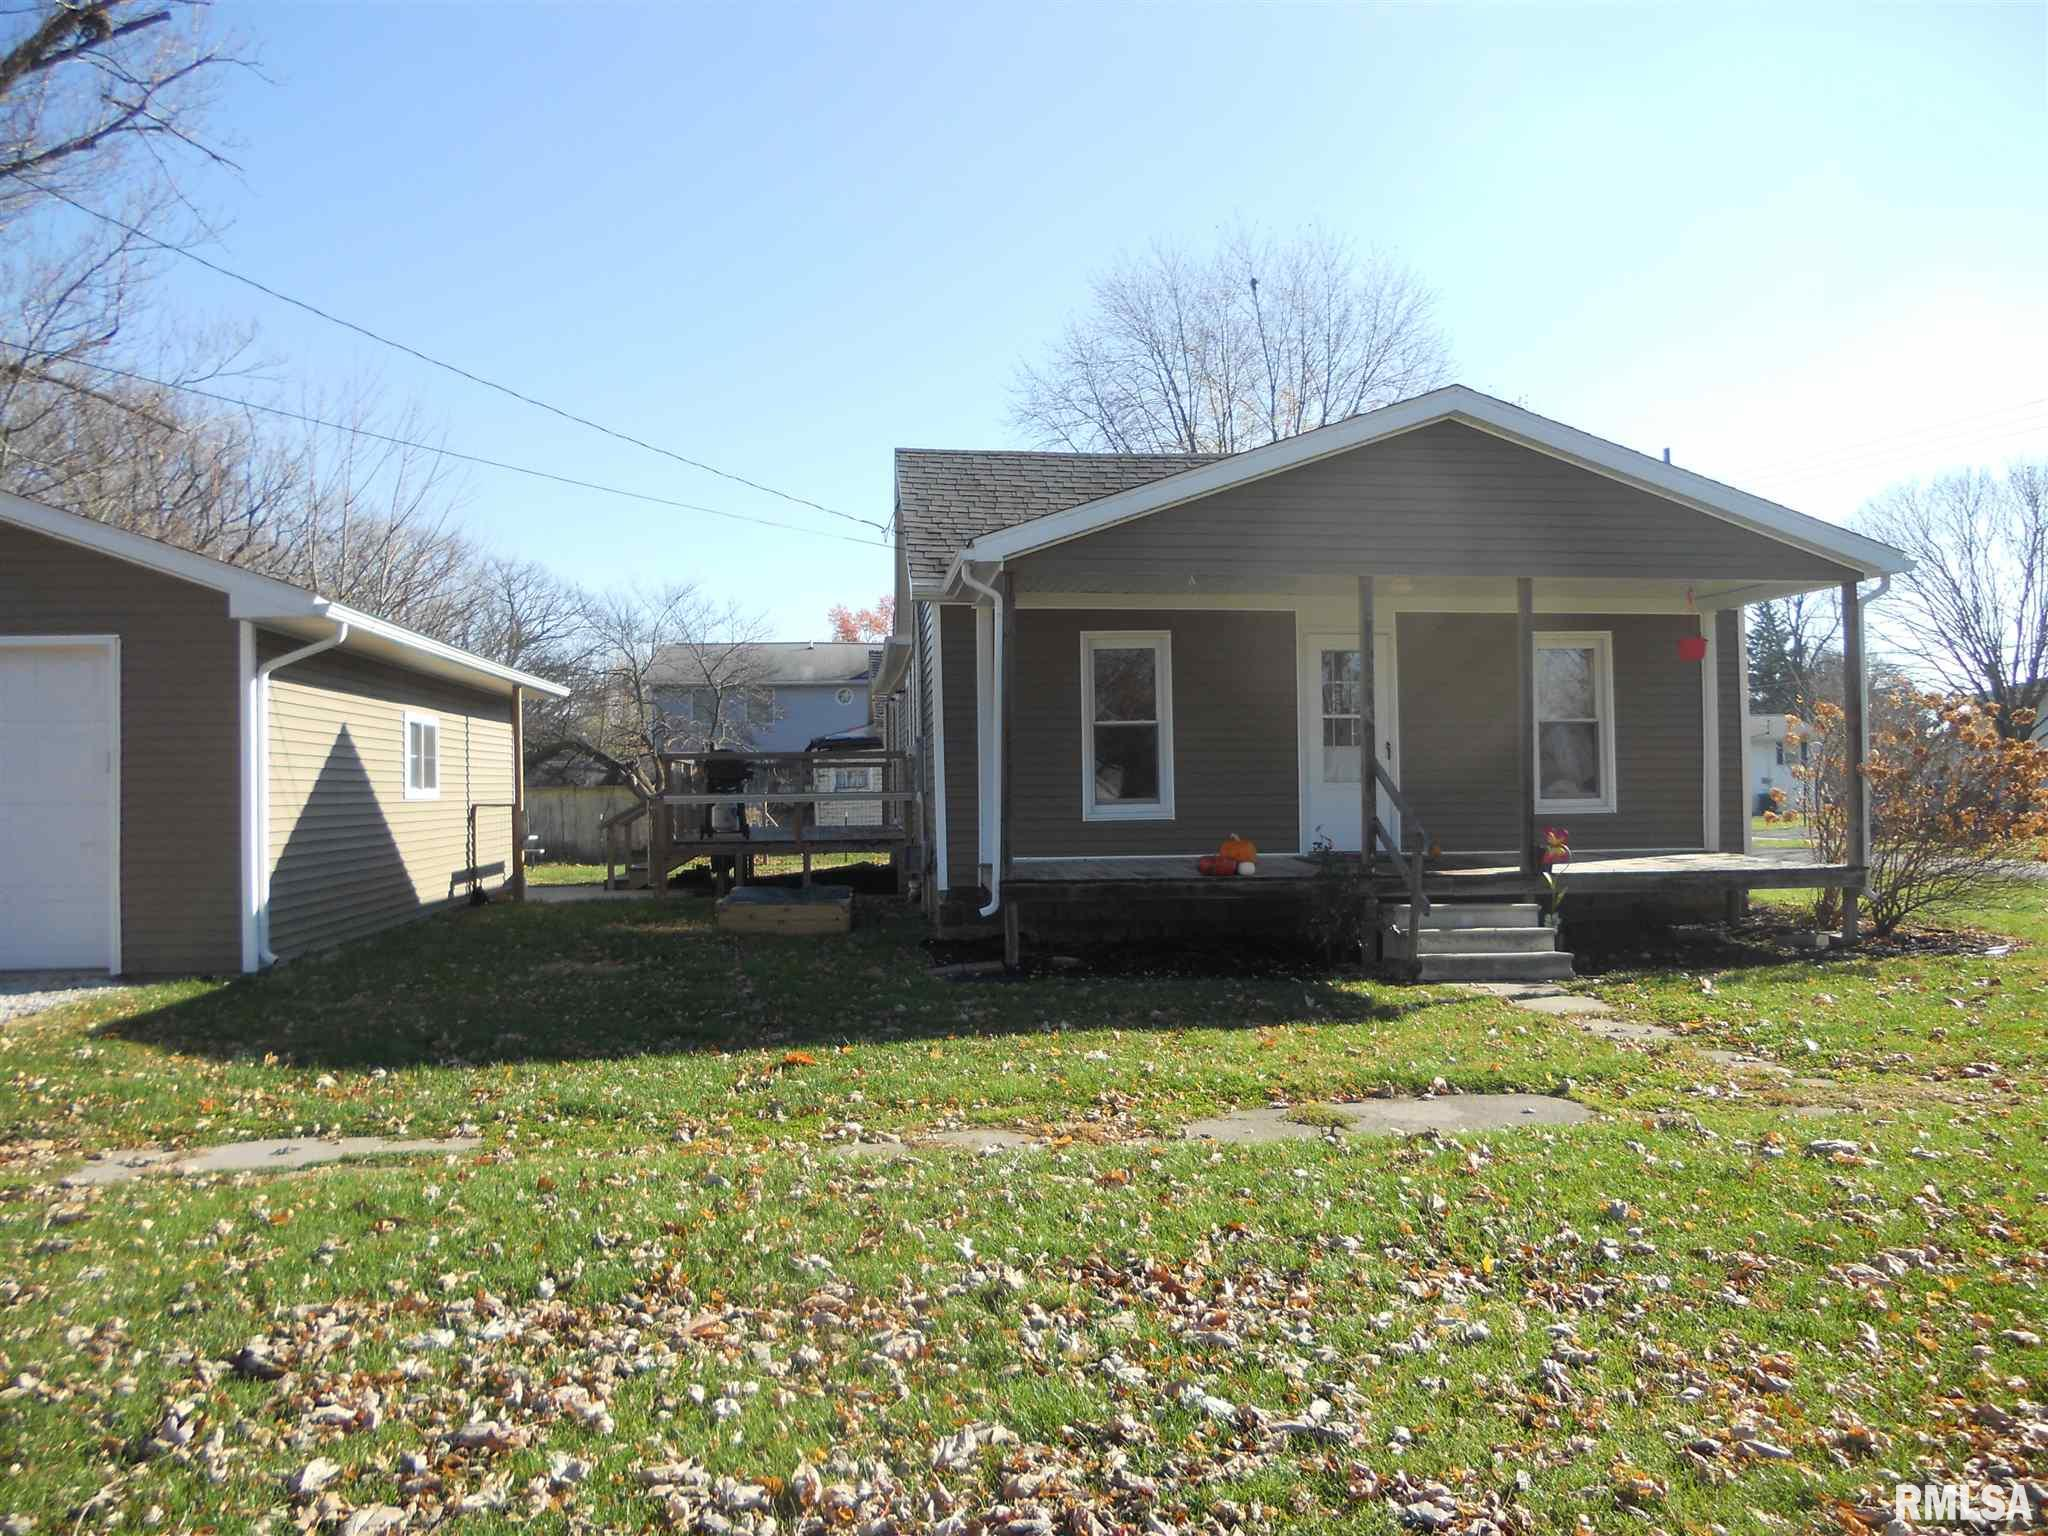 231 S FAYETTE Property Photo - Carthage, IL real estate listing